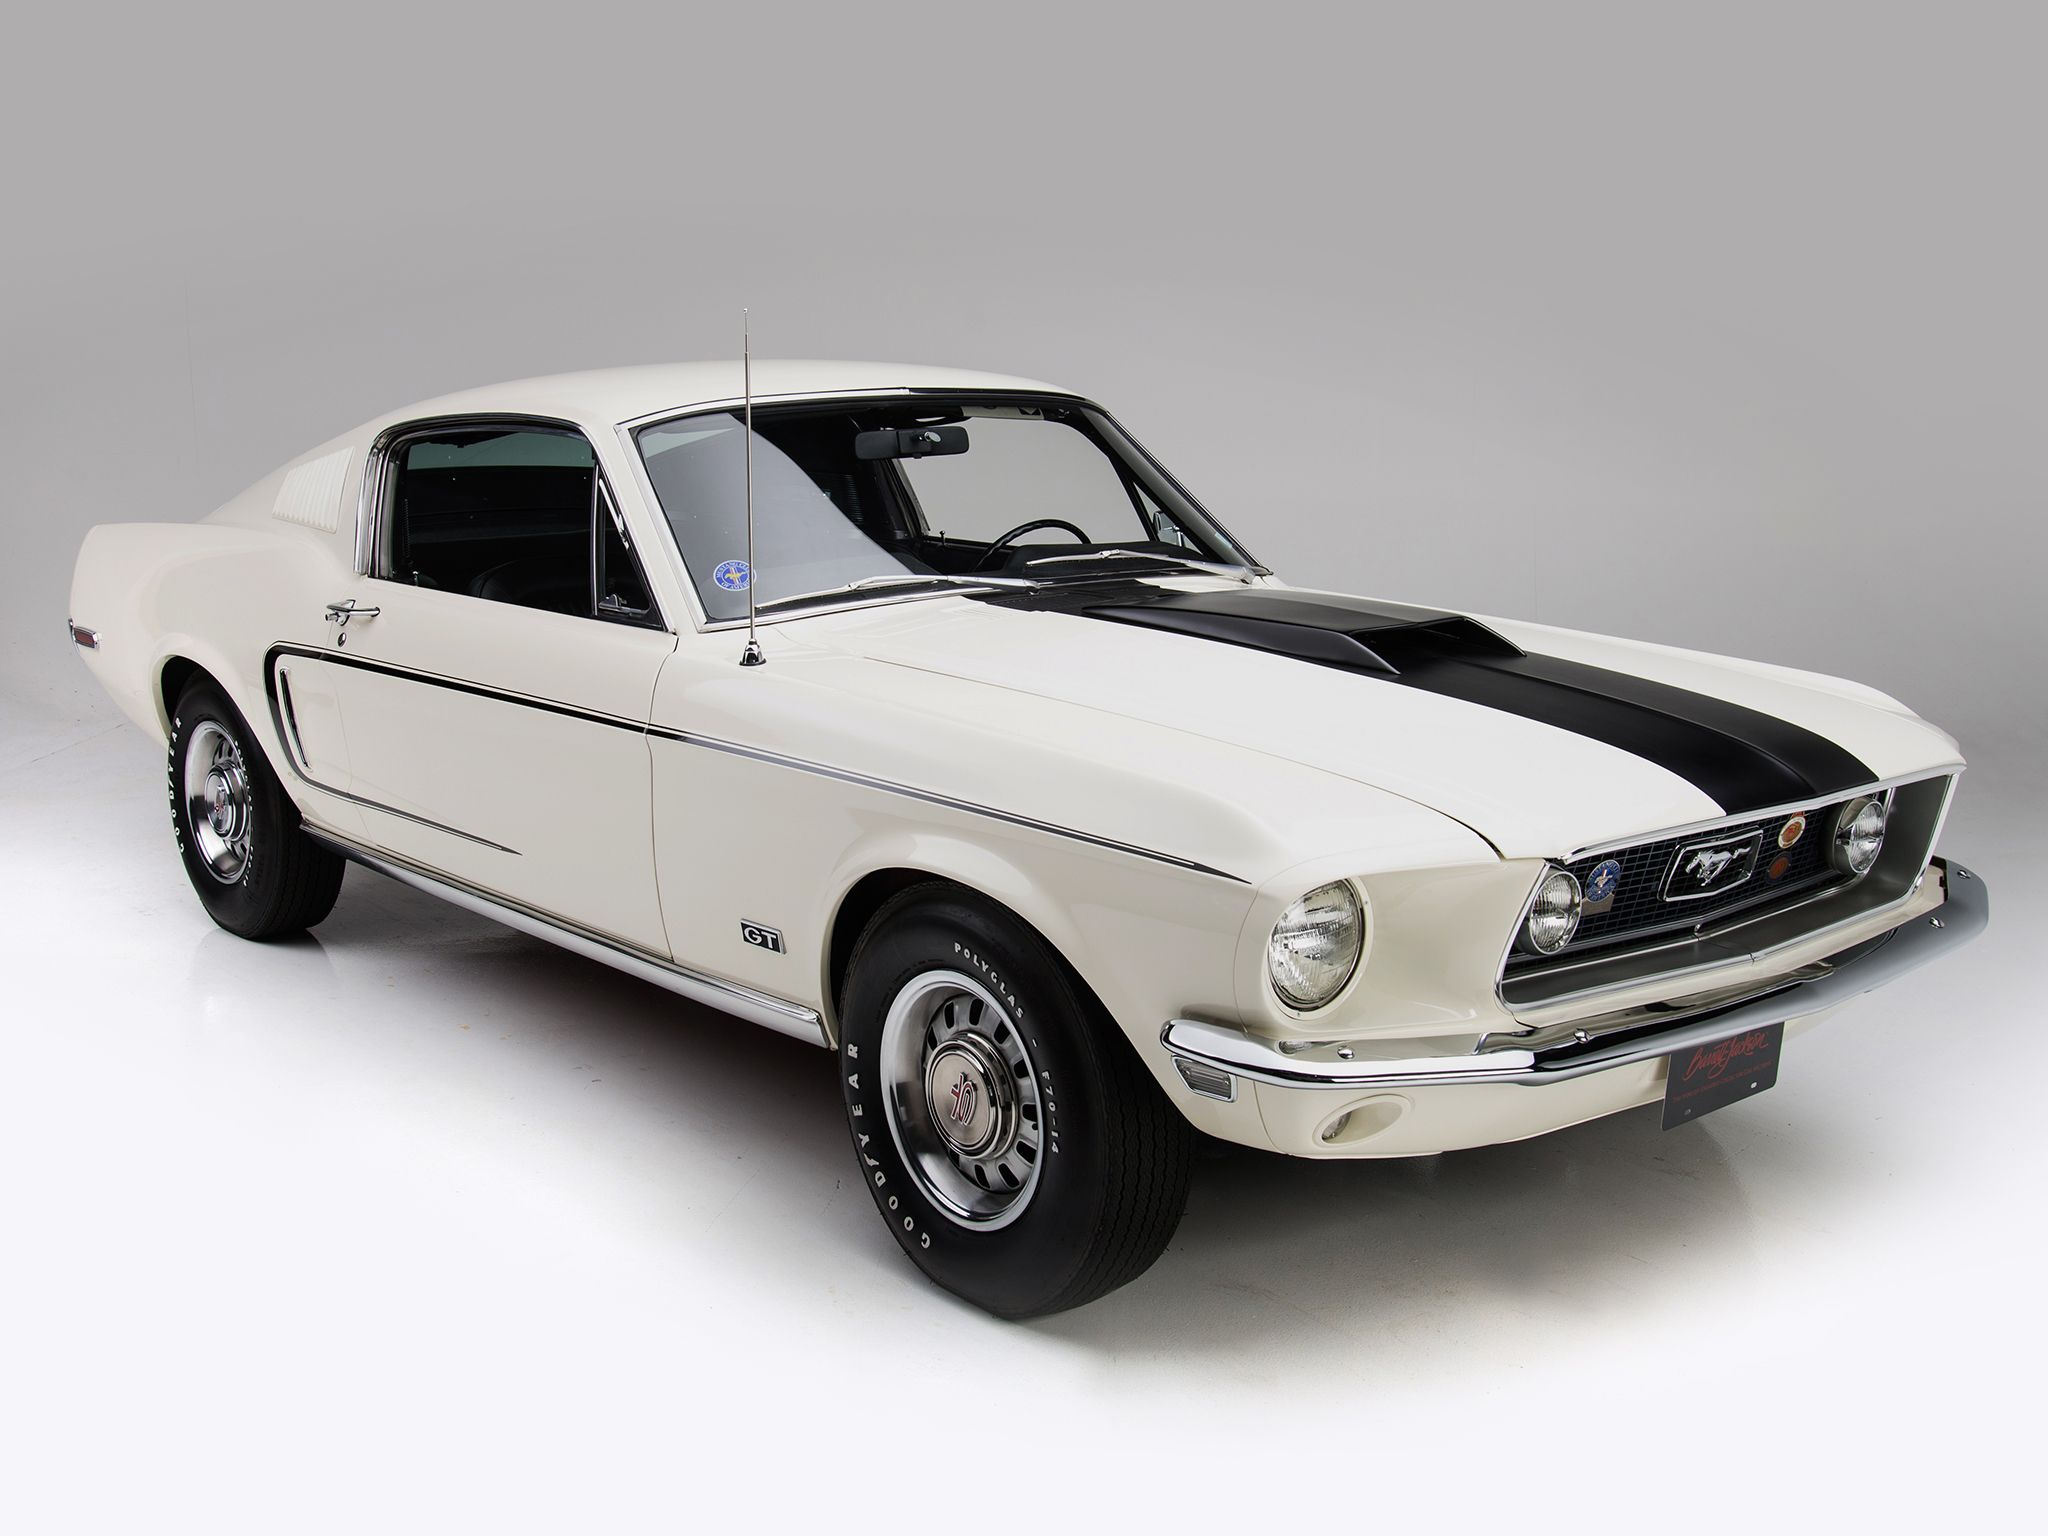 65 fastback ford mustang mustangs amp rods ford muscle cars for sale - 1968 Ford Mustang Gt 428 Cobra Jet Fastback